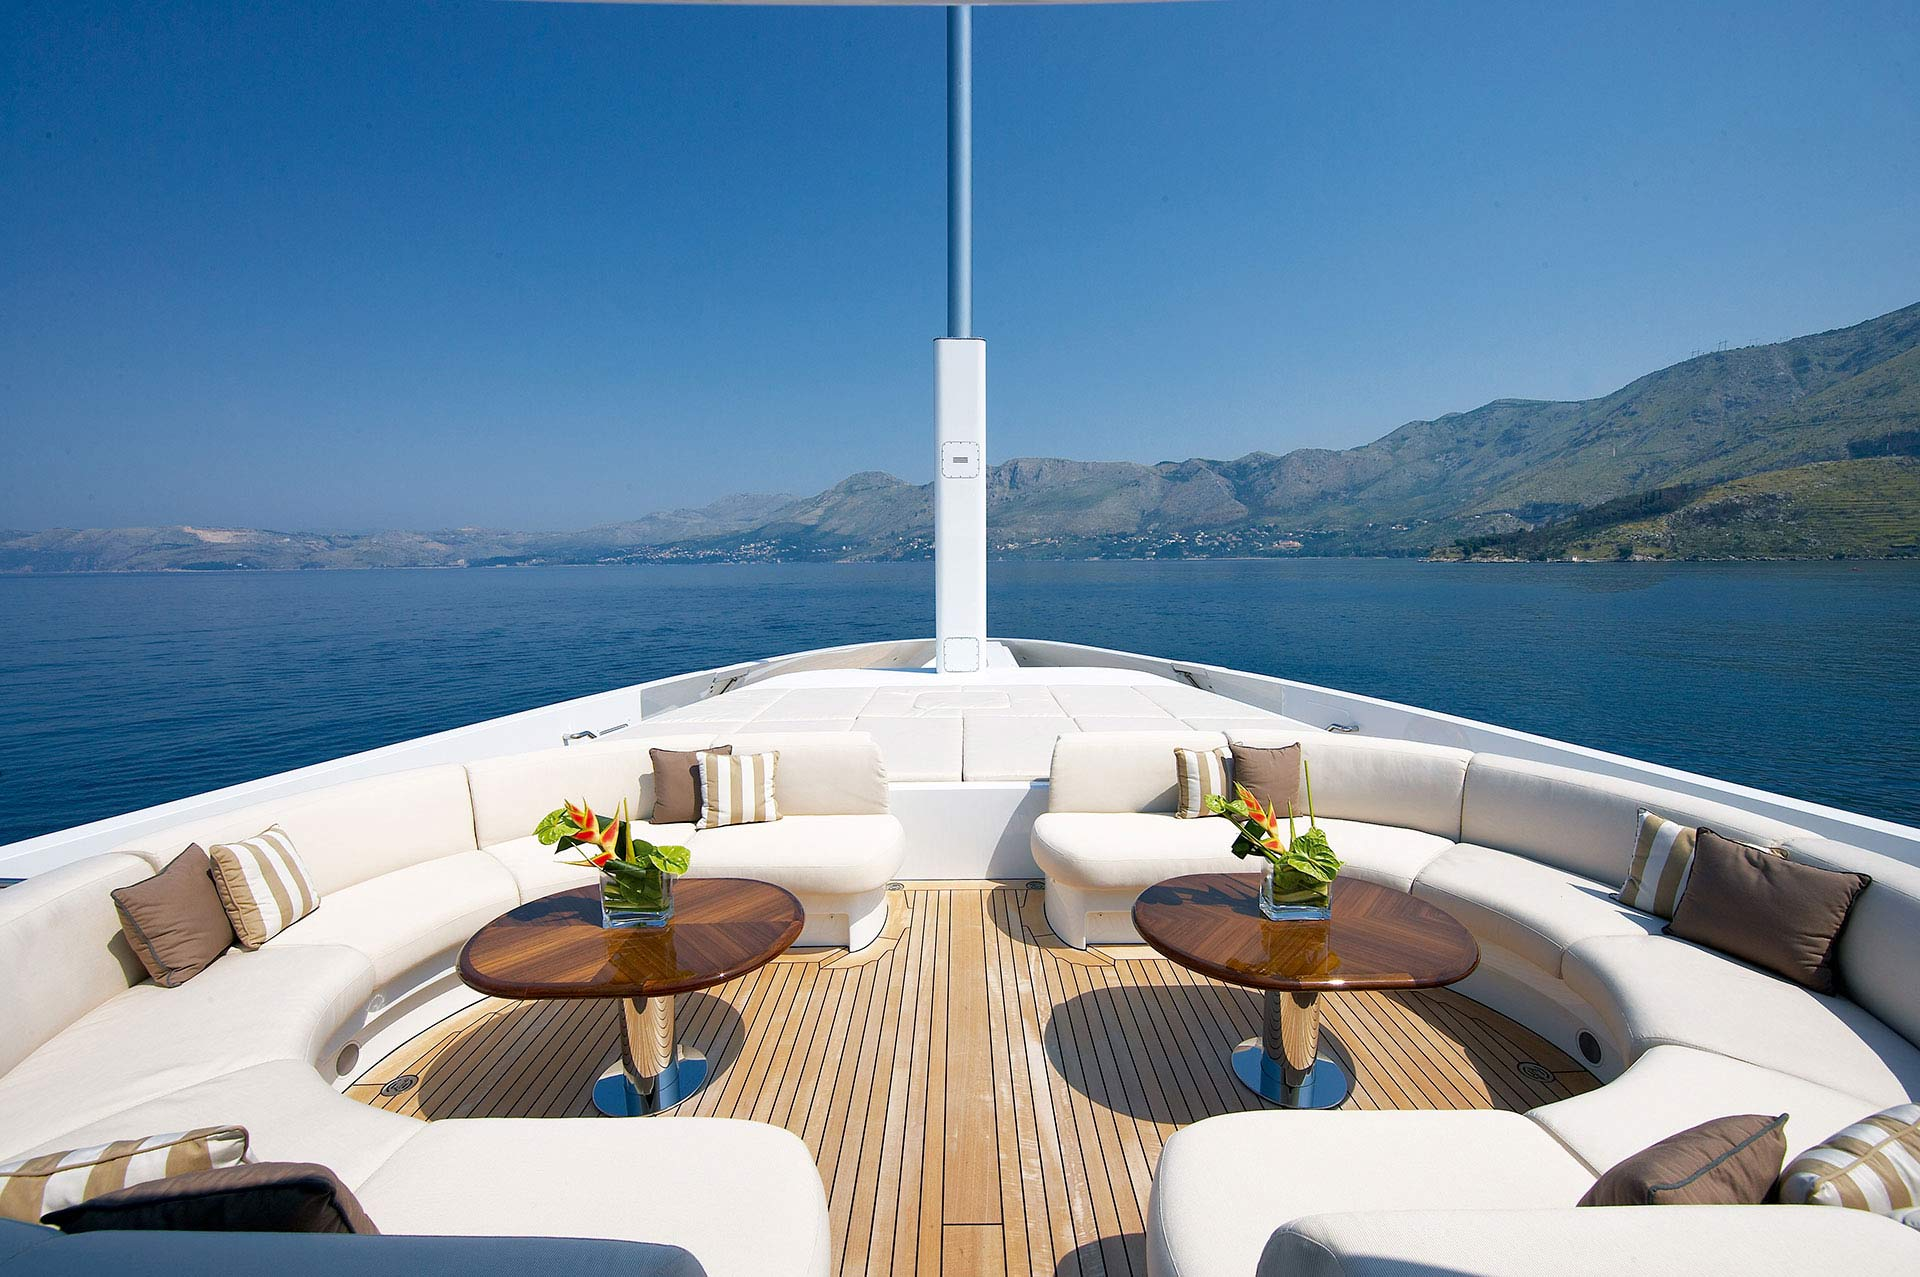 Andreas-L-Motor-Yacht-for-charter-gallery-15.jpg